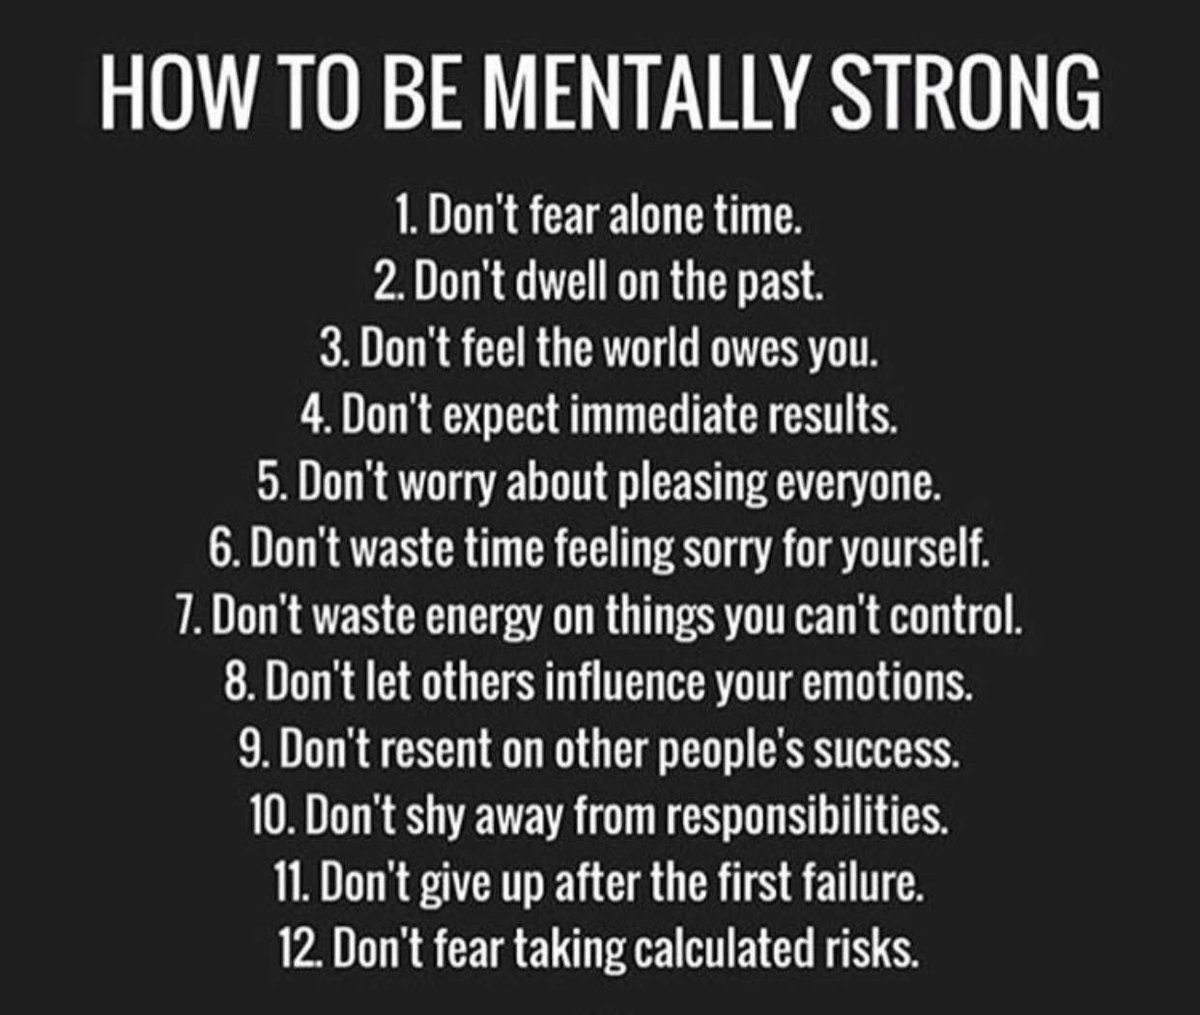 How to be mentally strong  #leadership #coaching #insperation #Mindset #Influence @RAwamleh #challenge #selfconfidence #women #lifestyle<br>http://pic.twitter.com/AsE8wxR6nH